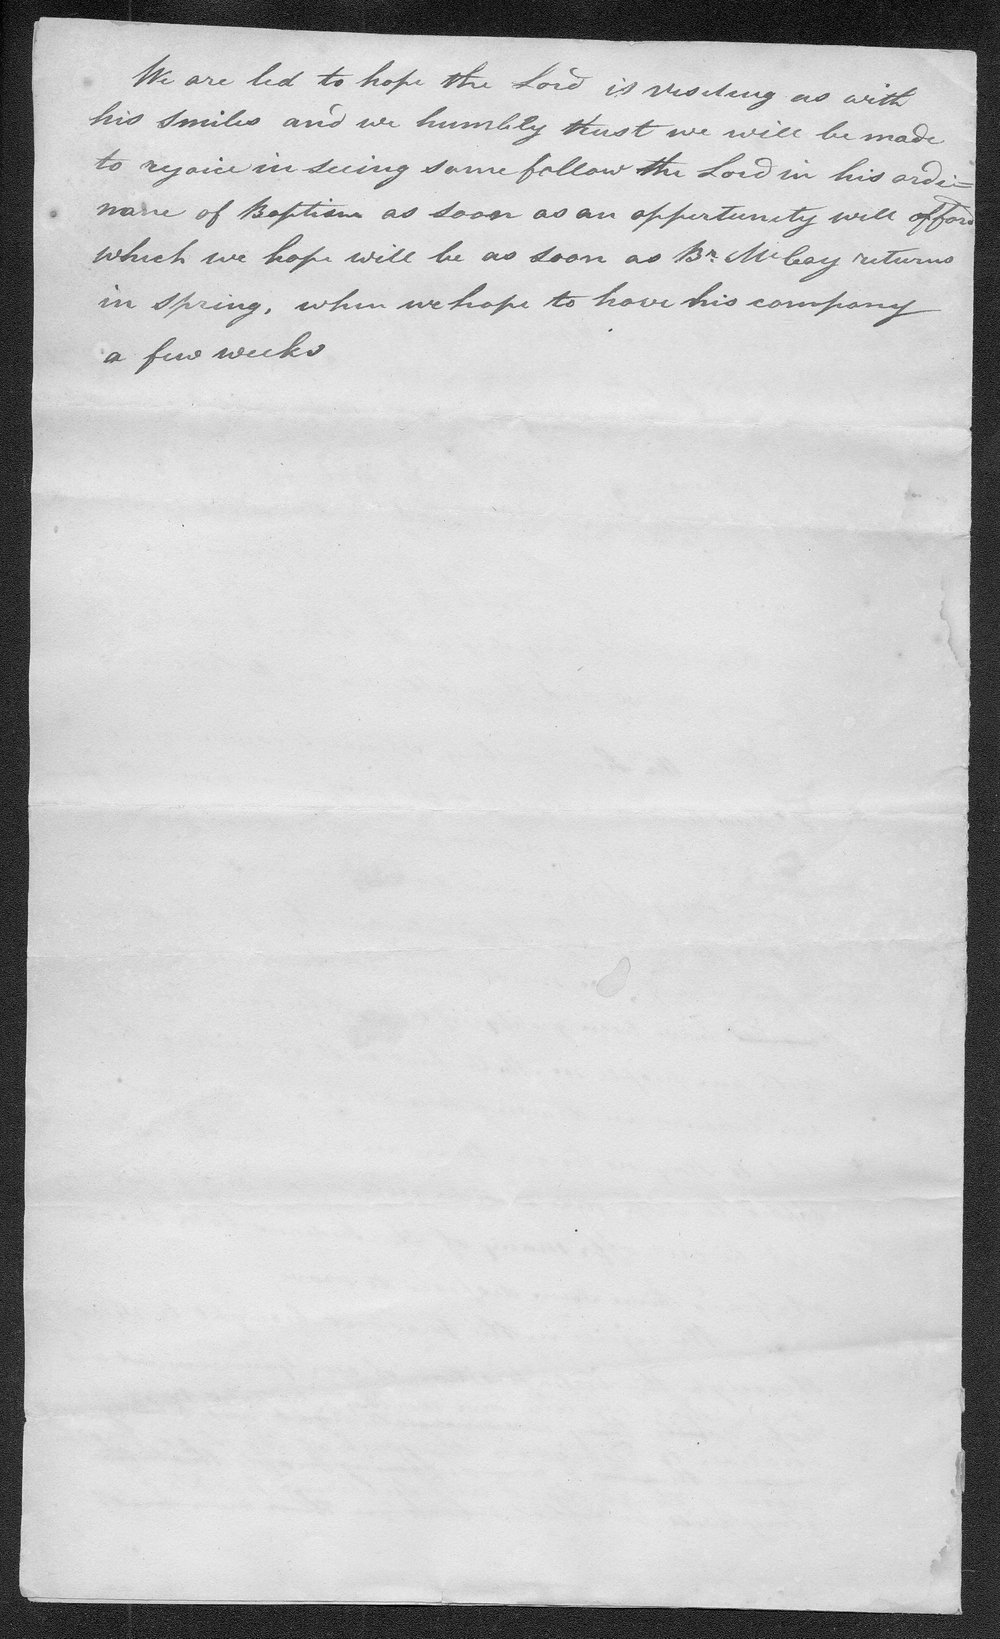 Carey Mission letter, unknown author - 2